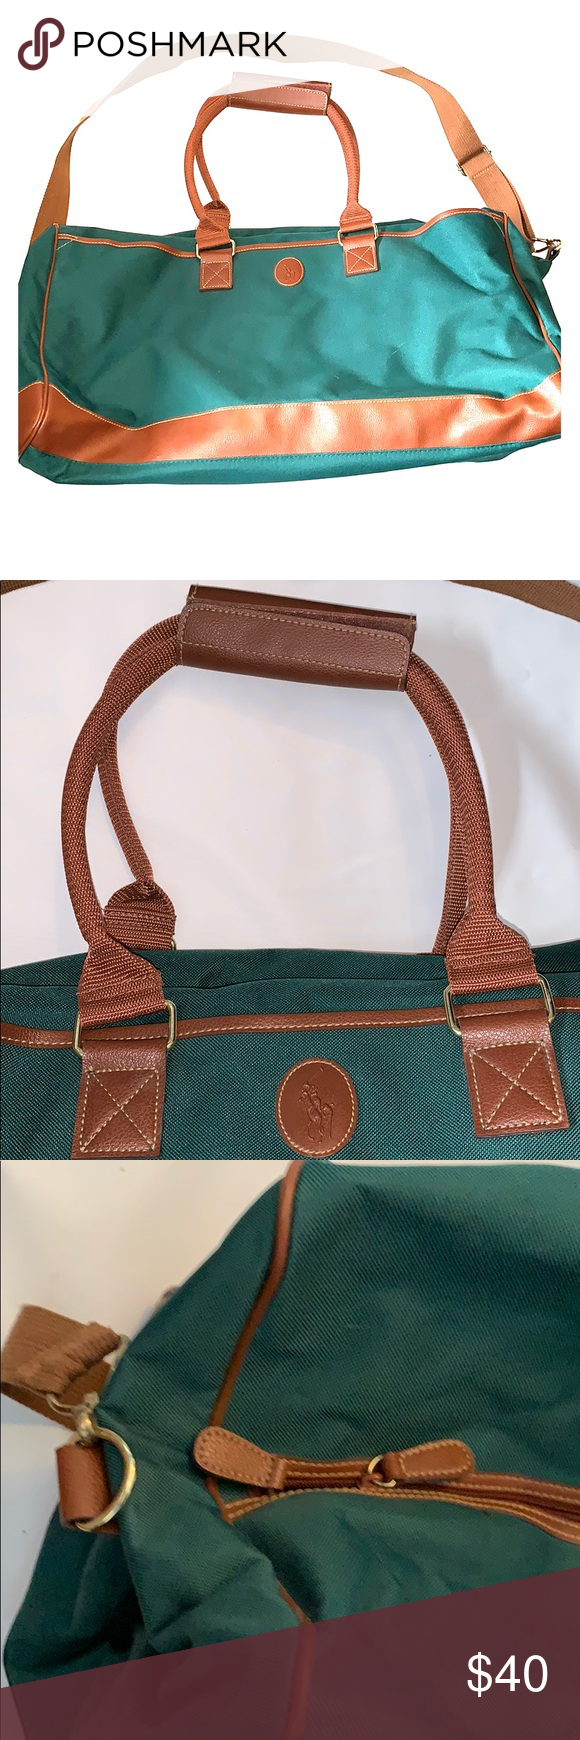 686e0666f19 Vintage POLO Green   brown duffle bag 💯 Auth Polo Ralph Lauren Green  Canvas Leather Overnight